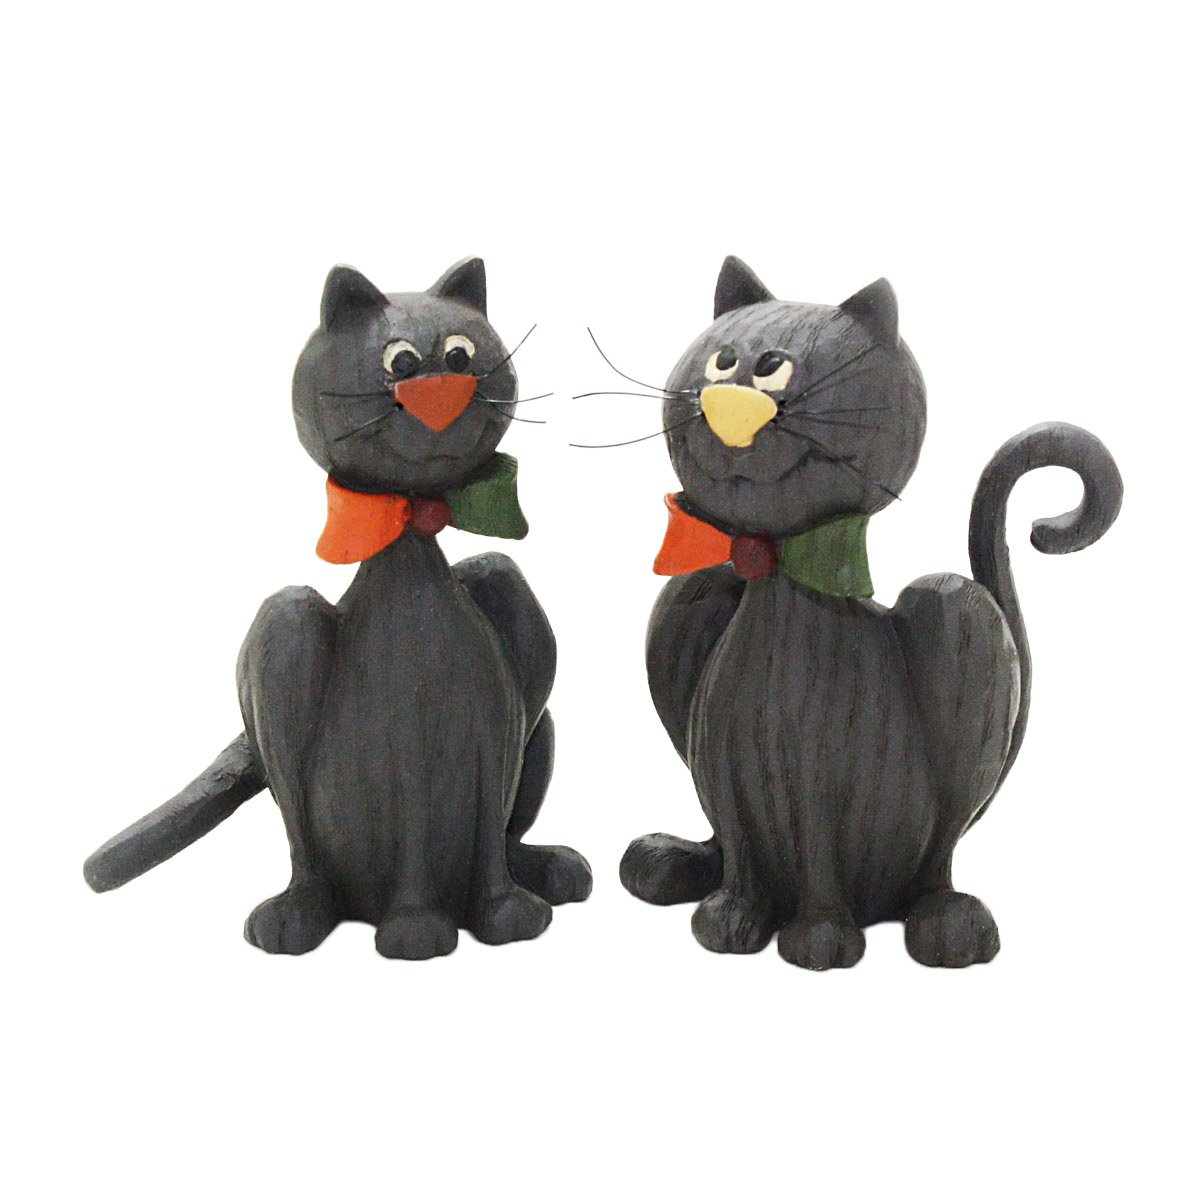 Blossom Bucket Black Cats with Bow Ties Halloween Figurines